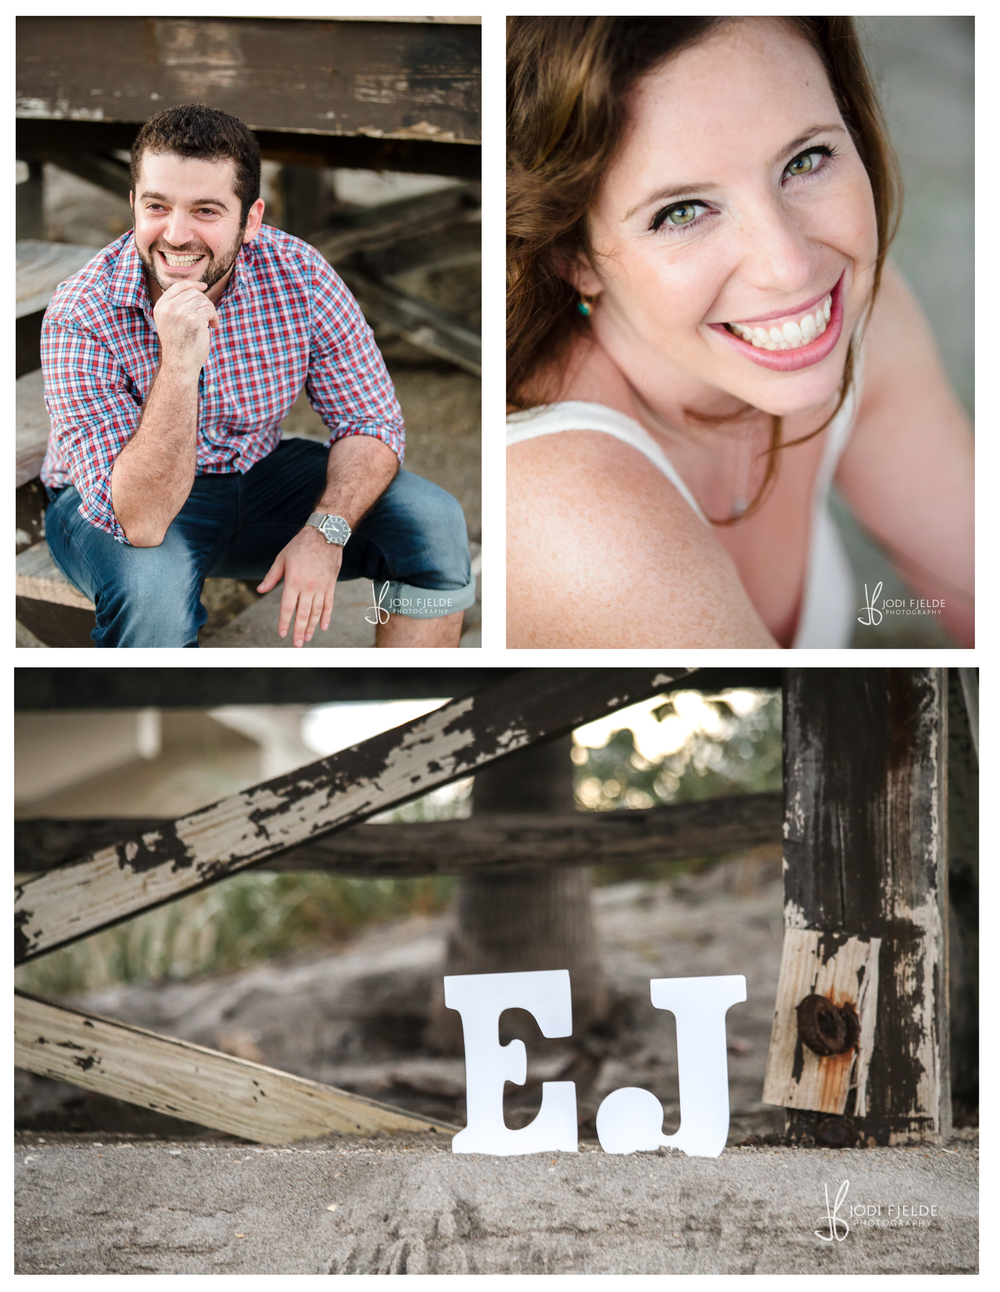 Dania_Beach_Engagement_Julia_Elias_Jodi_Fjelde_Photography-9.jpg